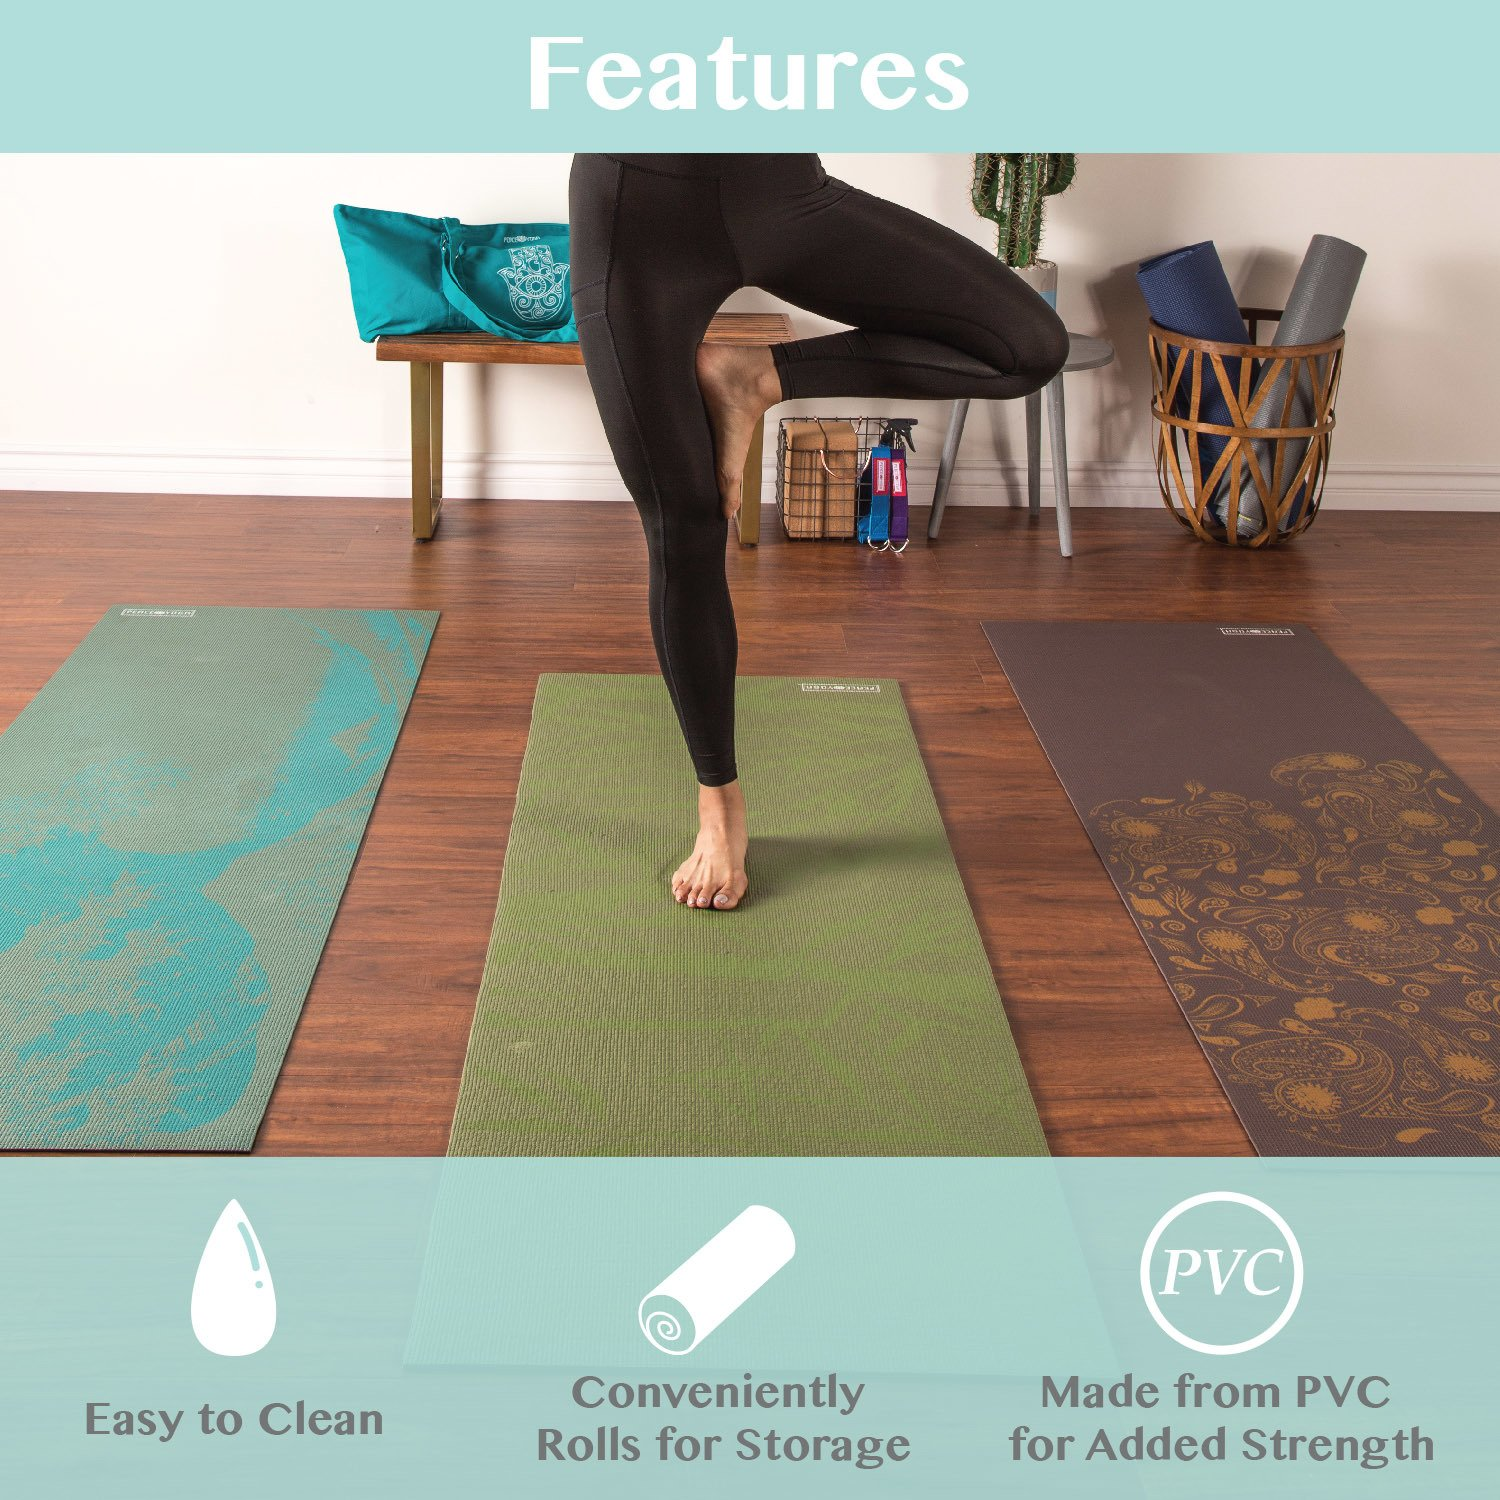 Amazon Peace Yoga Extra Thick 3mm Or 6mm Pilates Exercise Mat With Printed Design Sports Outdoors